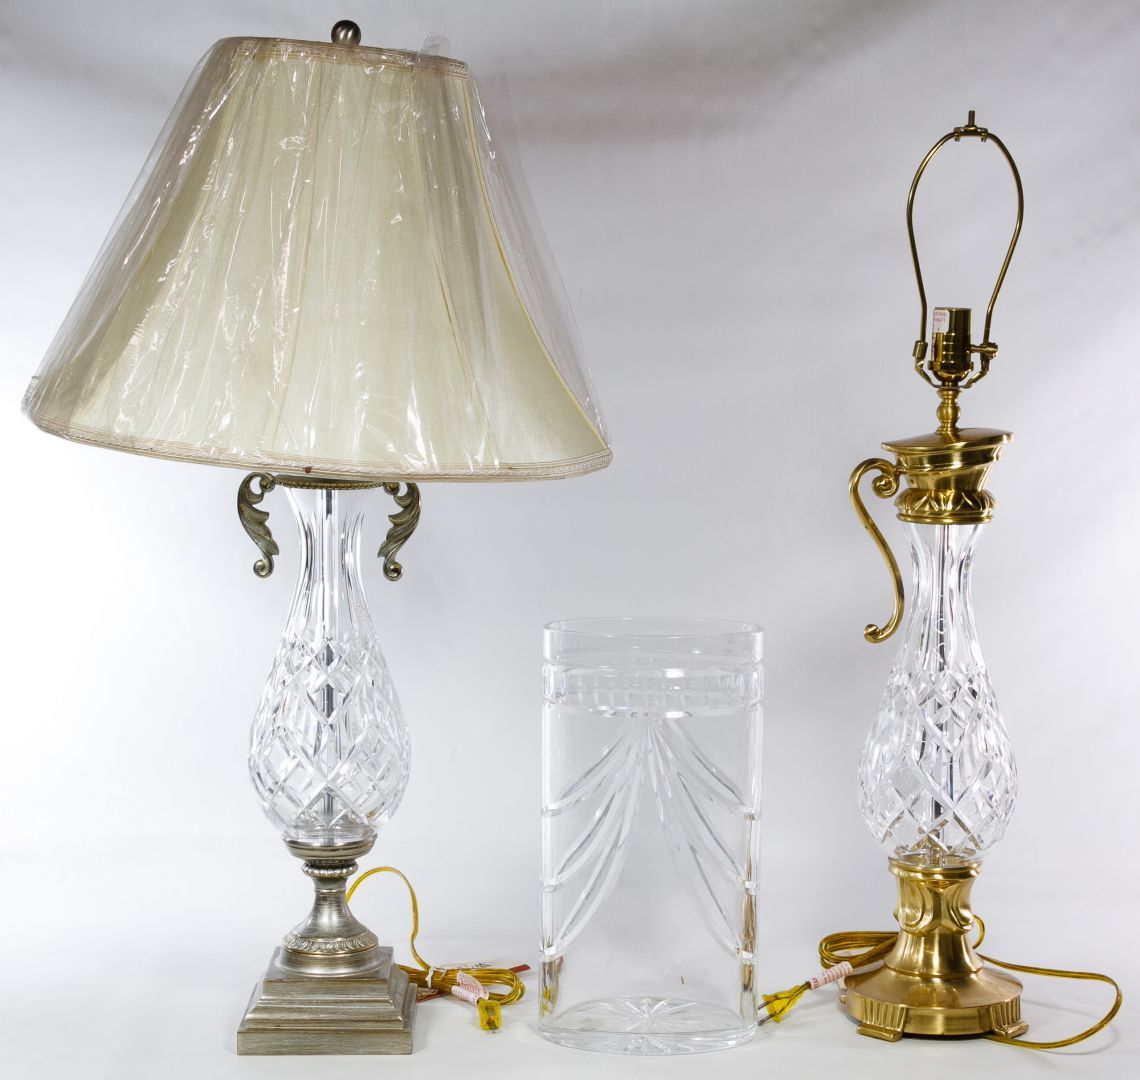 at rare pattern furniture f lamp first id style night table lamps waterford lighting alana z